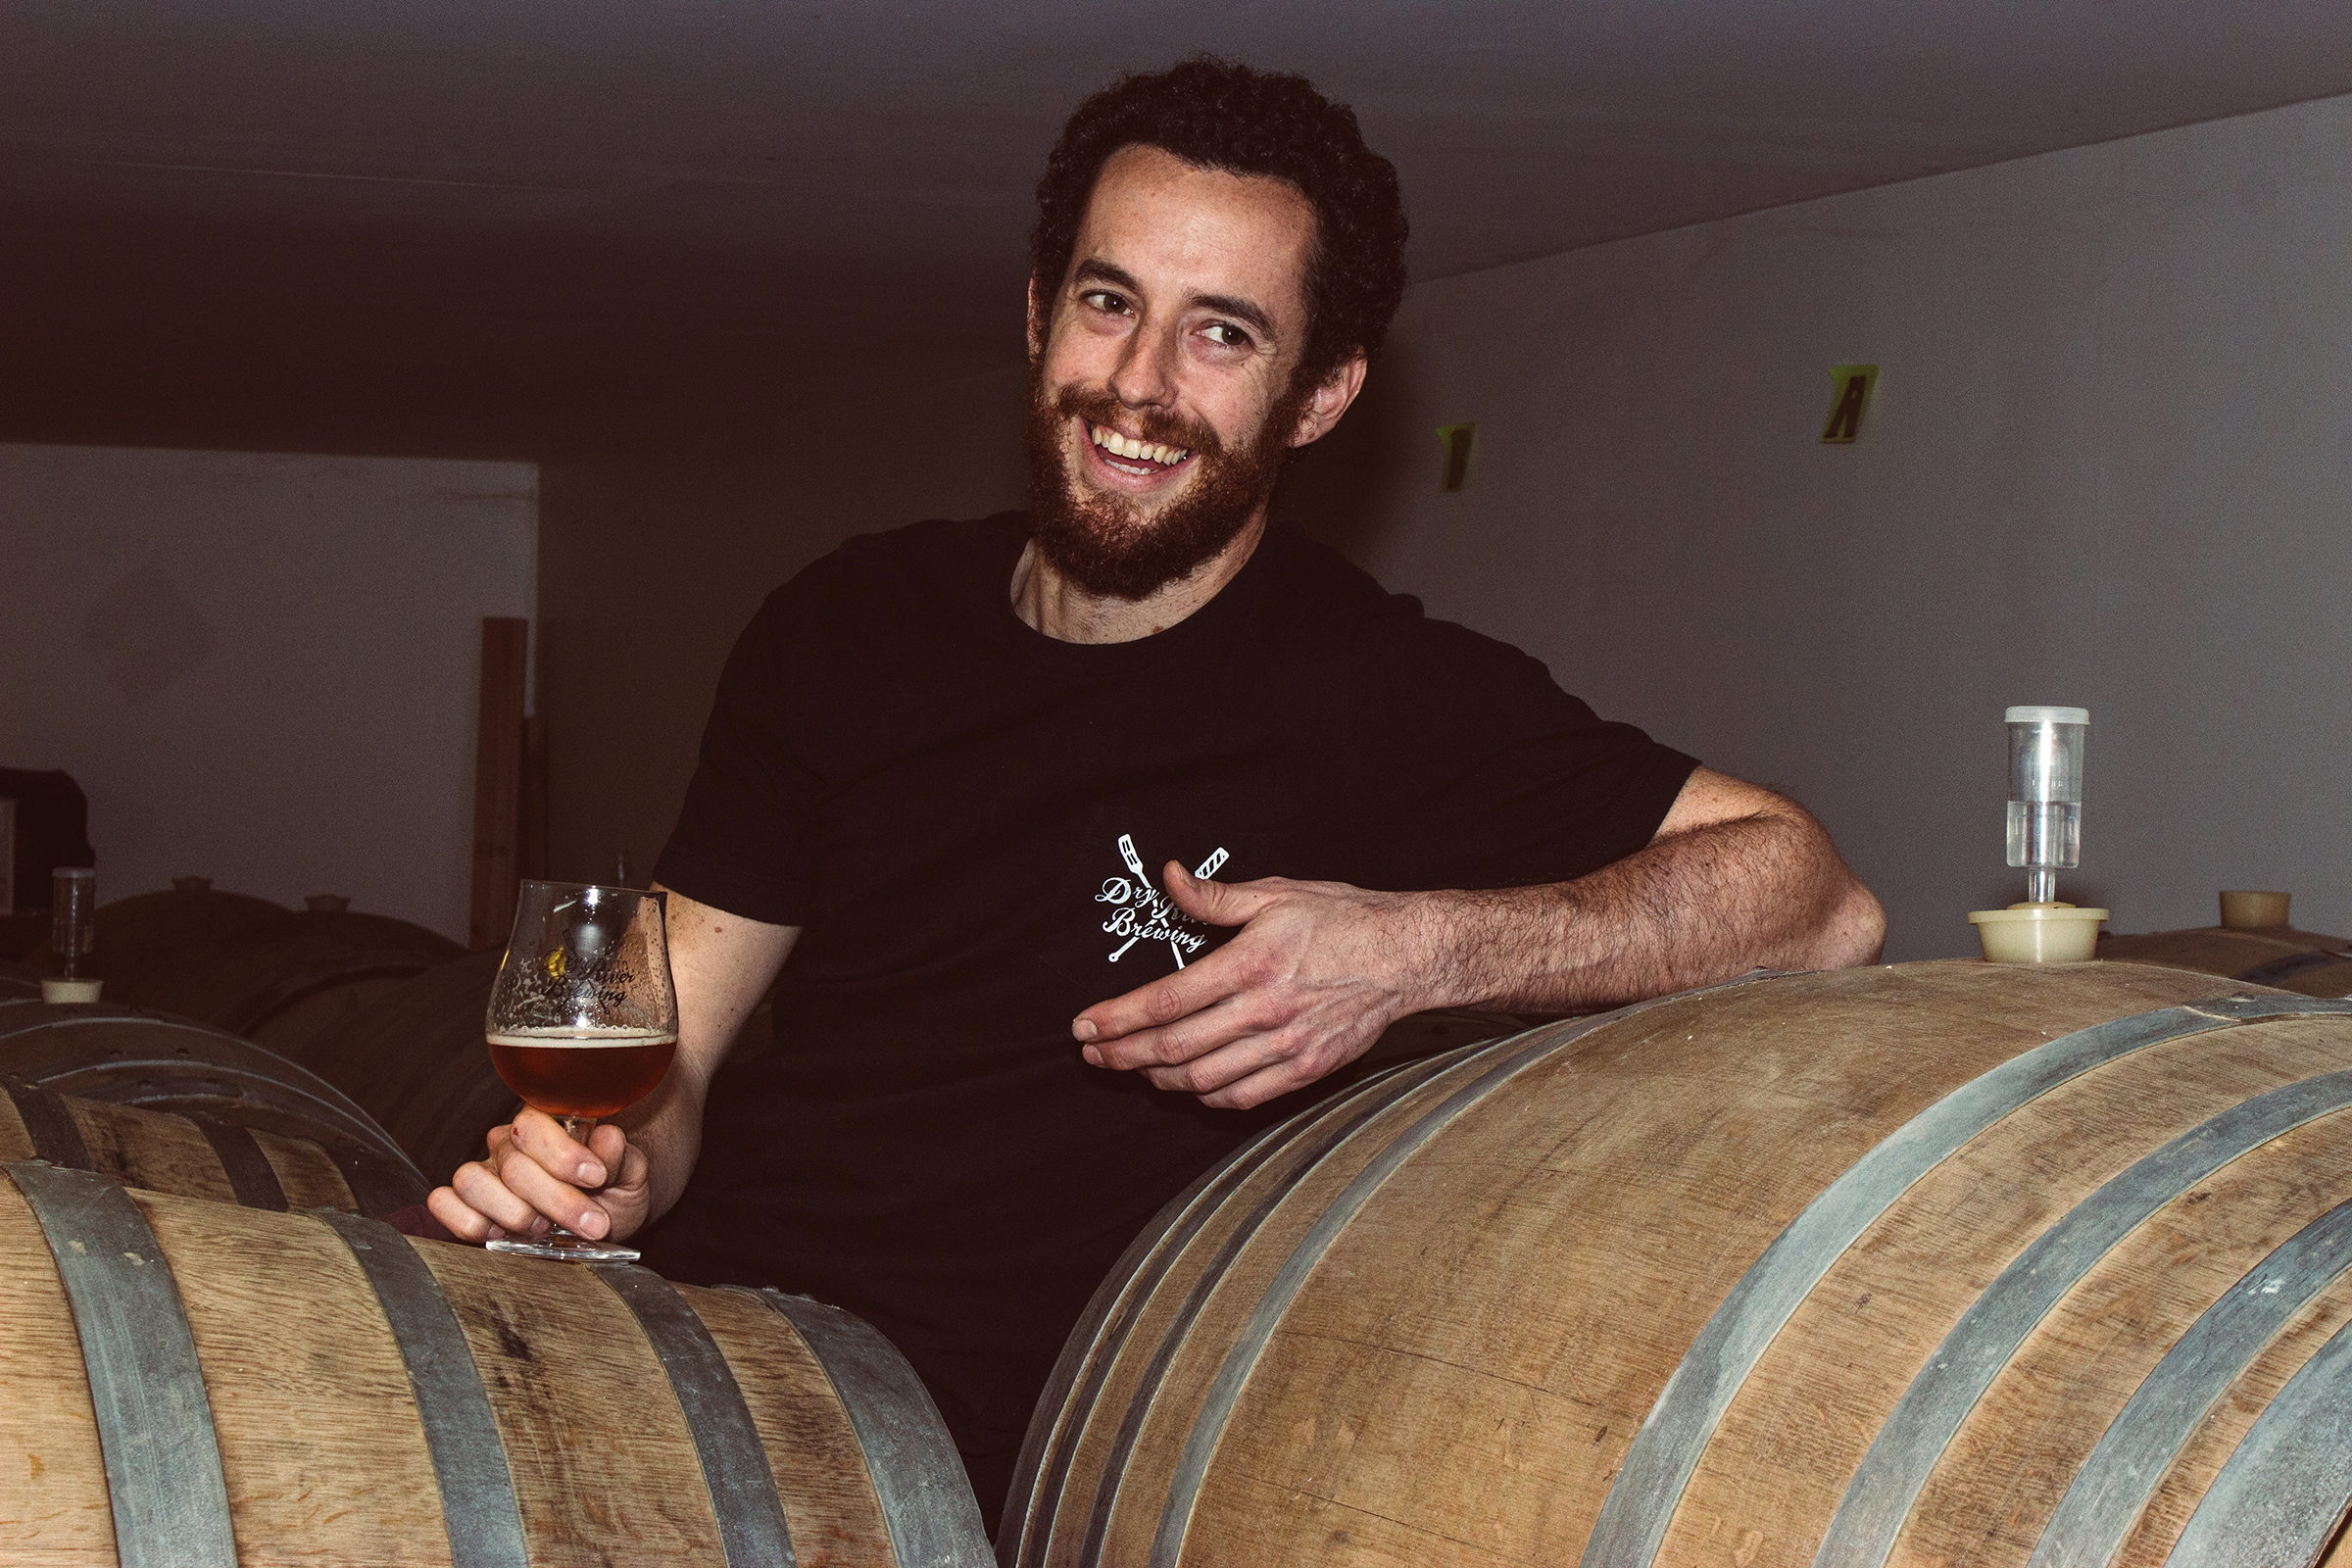 Garrett - Favorite Beer style:F1 Dry HopHobby:Climbing RocksFavorite thing about DRB?The mystery.